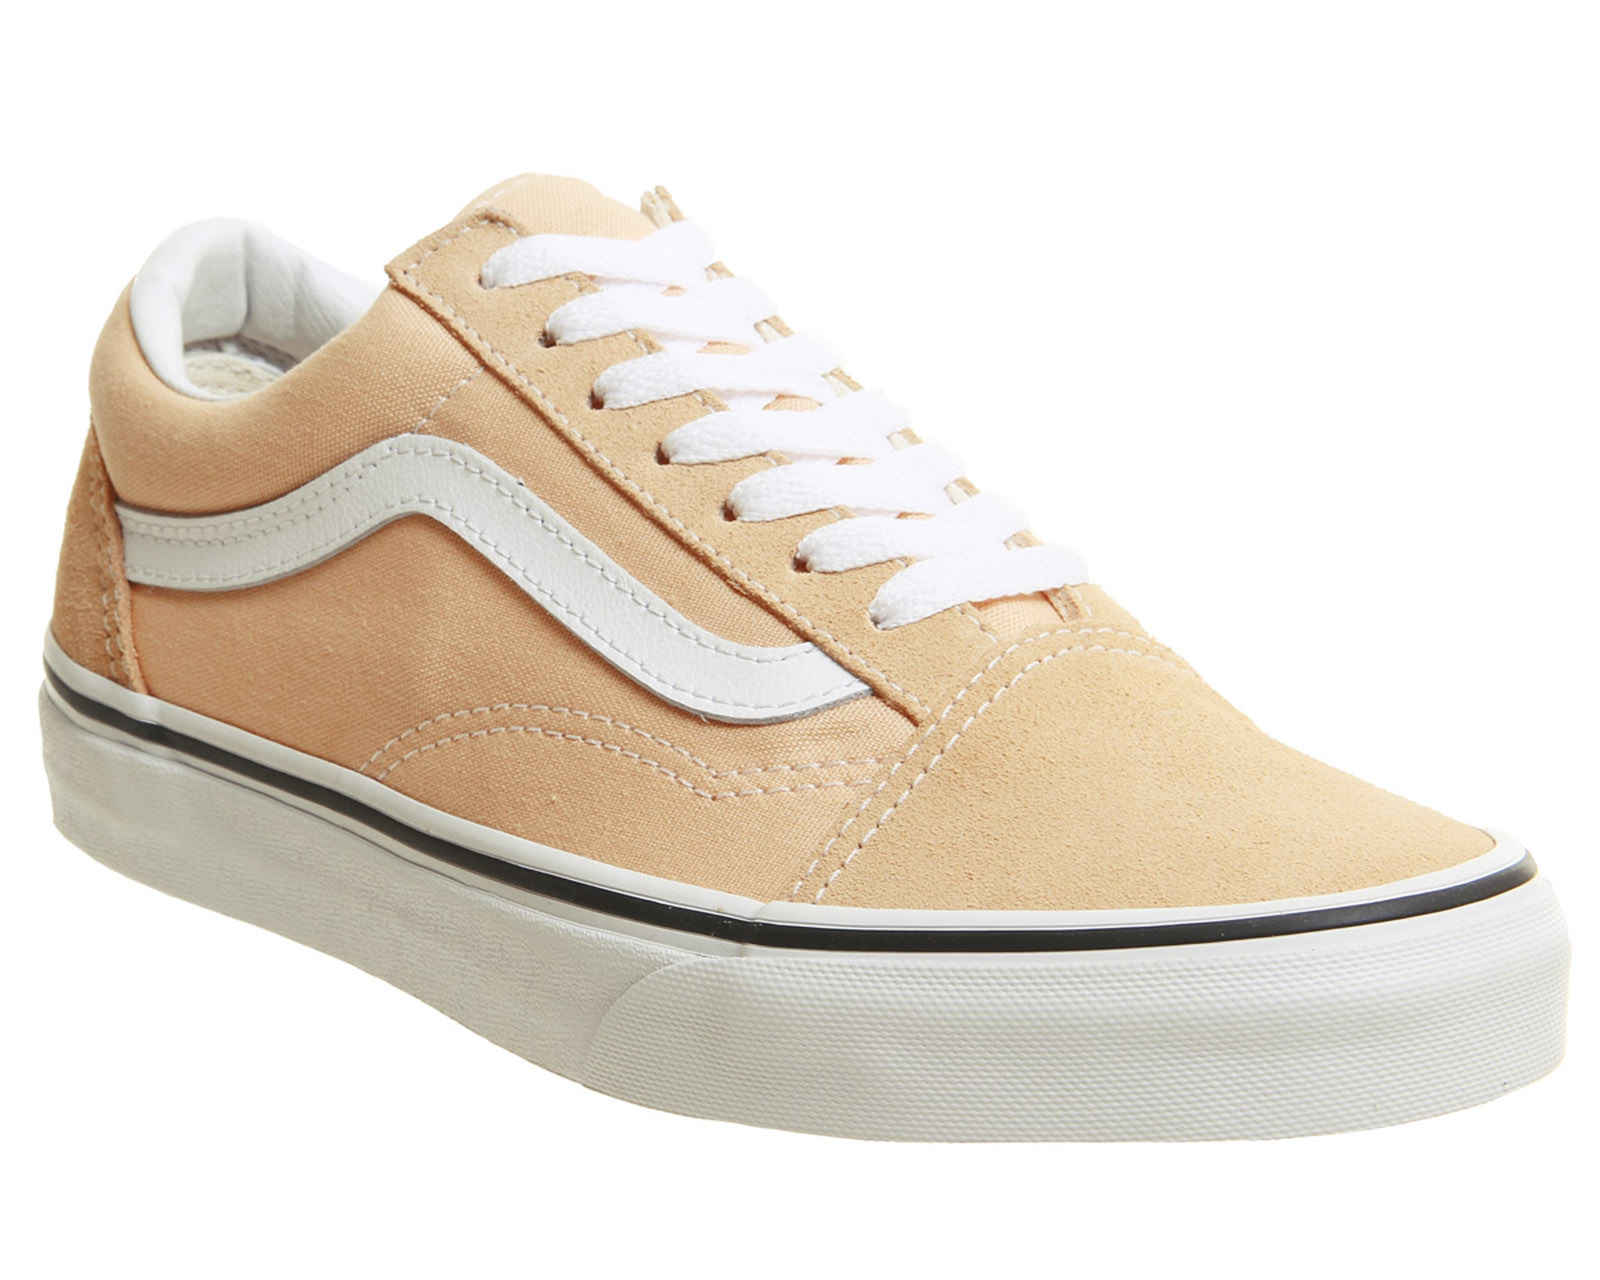 0581913b14d Sentinel Mens Vans Old Skool Trainers Bleached Apricot Trainers Shoes